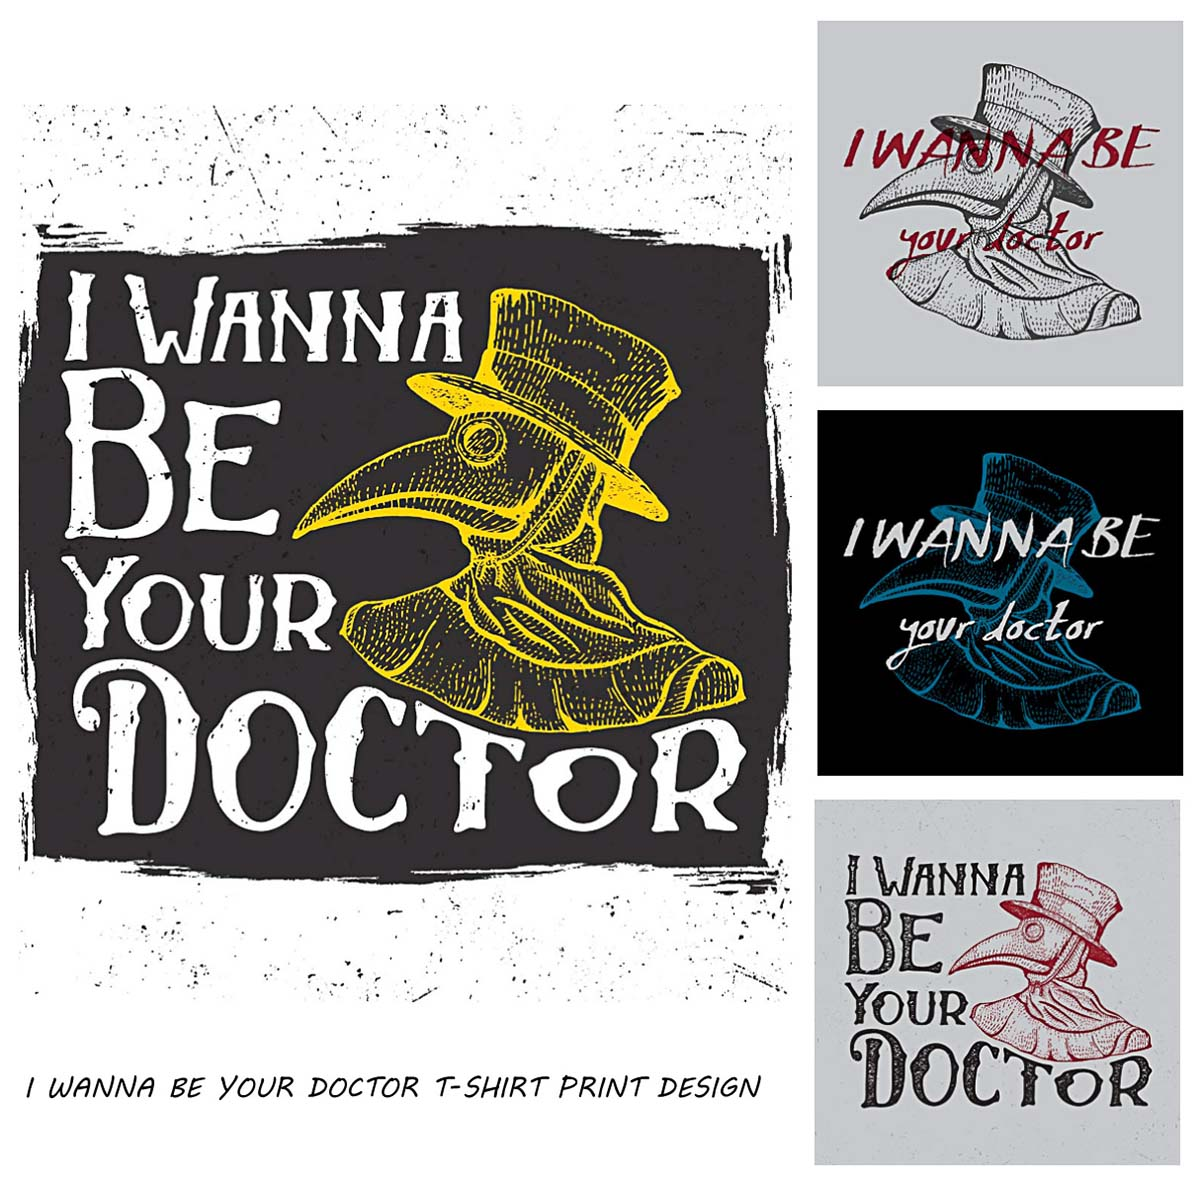 I wanna be your doctor t-shirt vintage label design with illustrated plague doctor